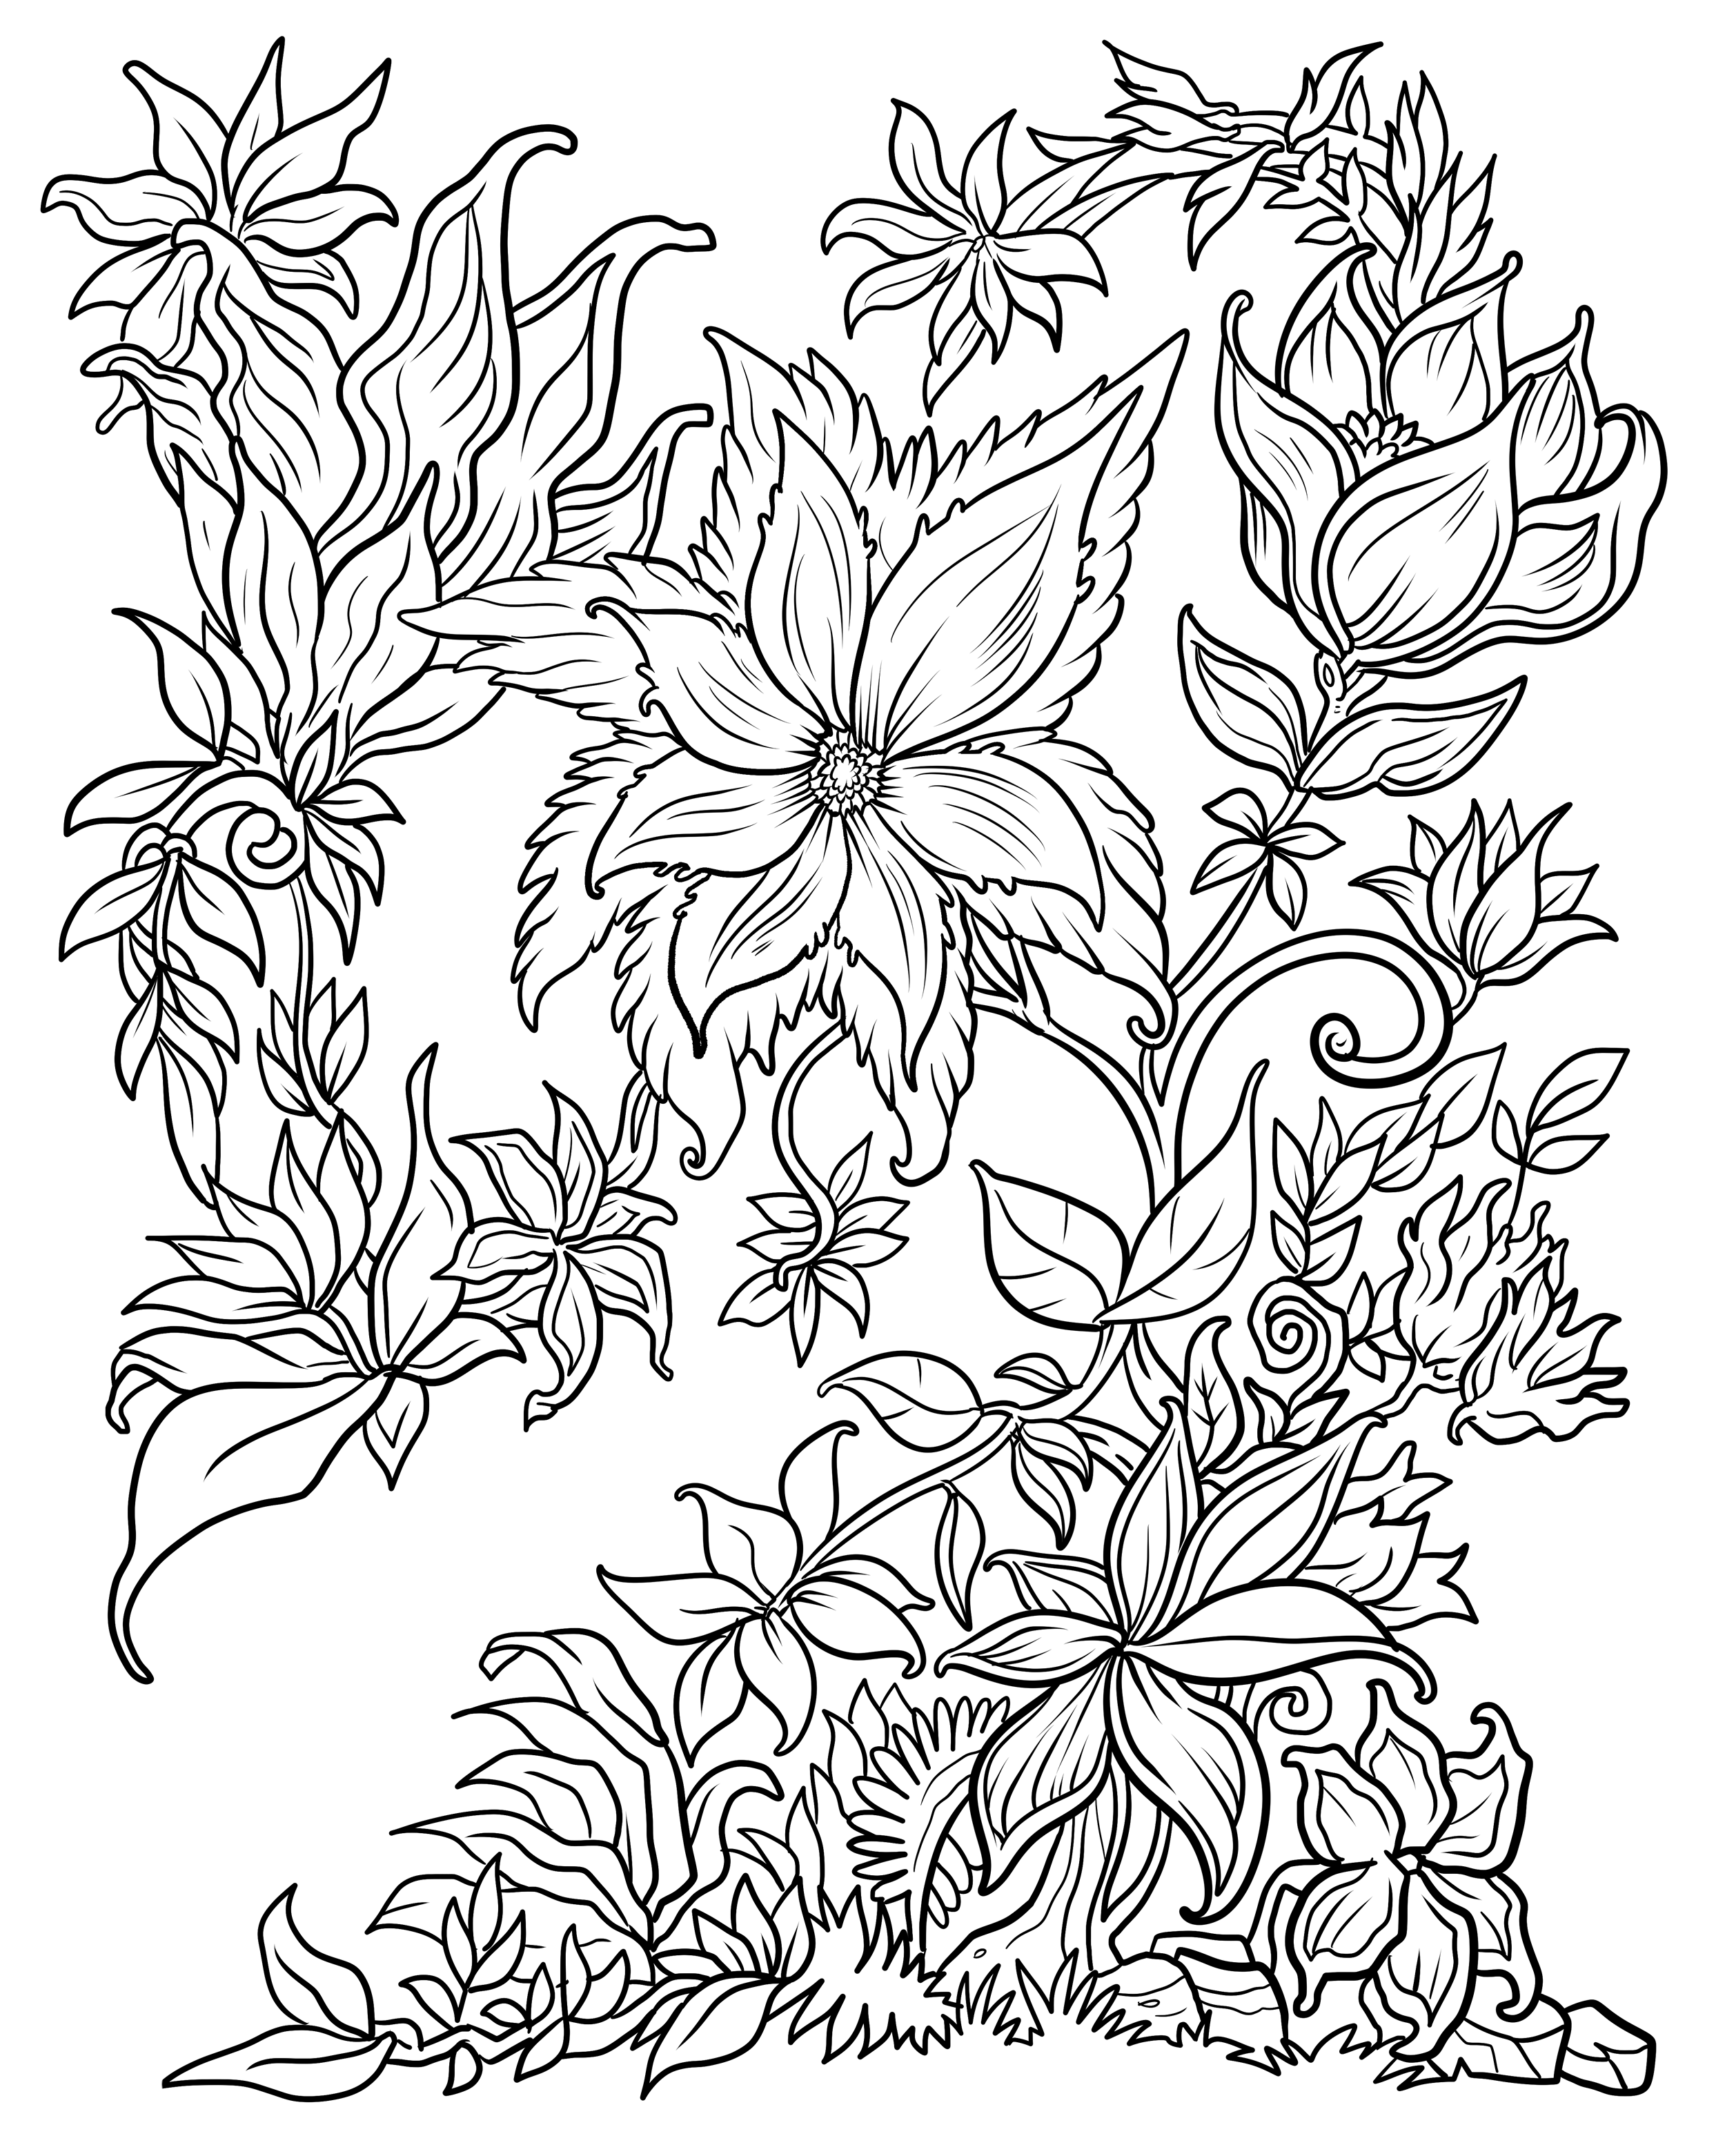 flower printable coloring pages detailed flower coloring pages to download and print for free printable coloring flower pages